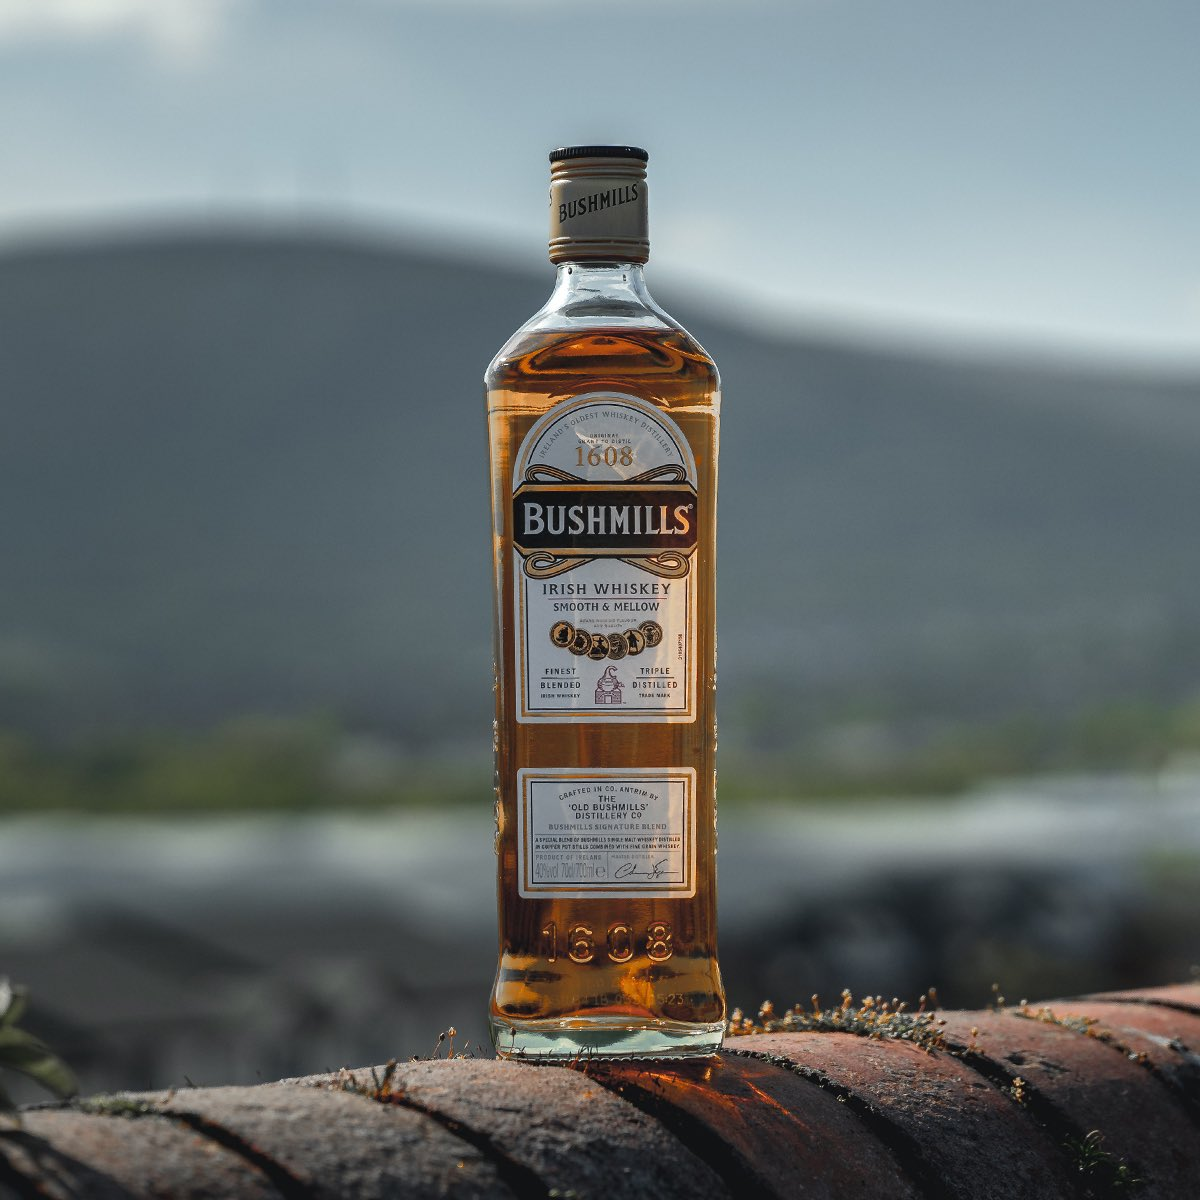 A whiskey as versatile as the Island from which it hails.   #DrinkResponsibly #Bushmills<br>http://pic.twitter.com/QU0KUBGHya